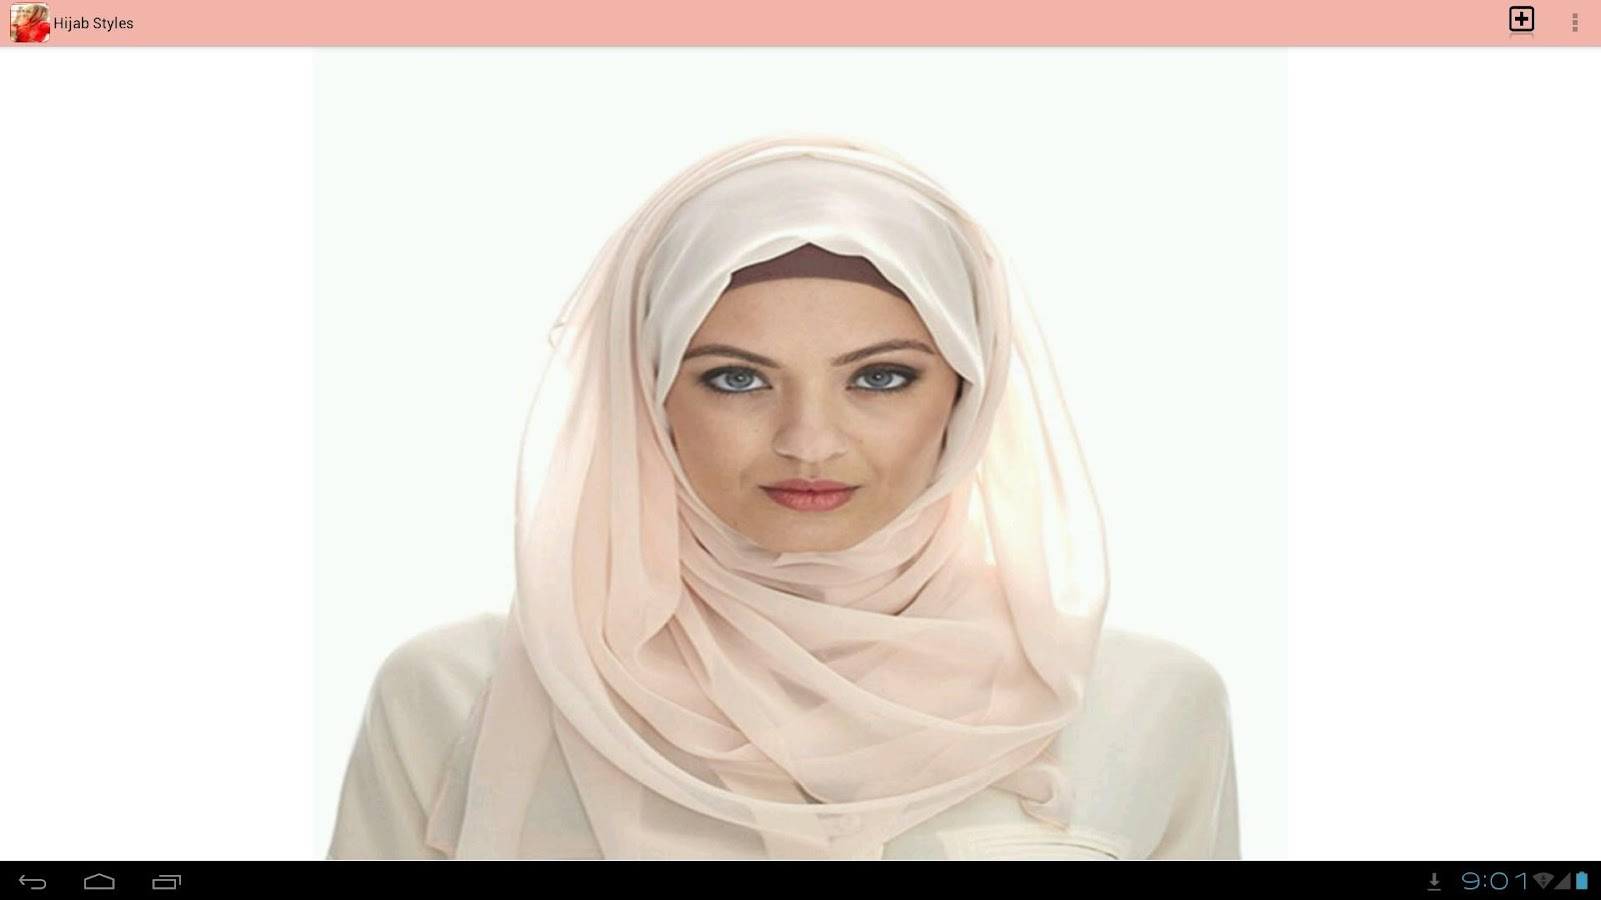 Hijab Styles Apl Android Di Google Play